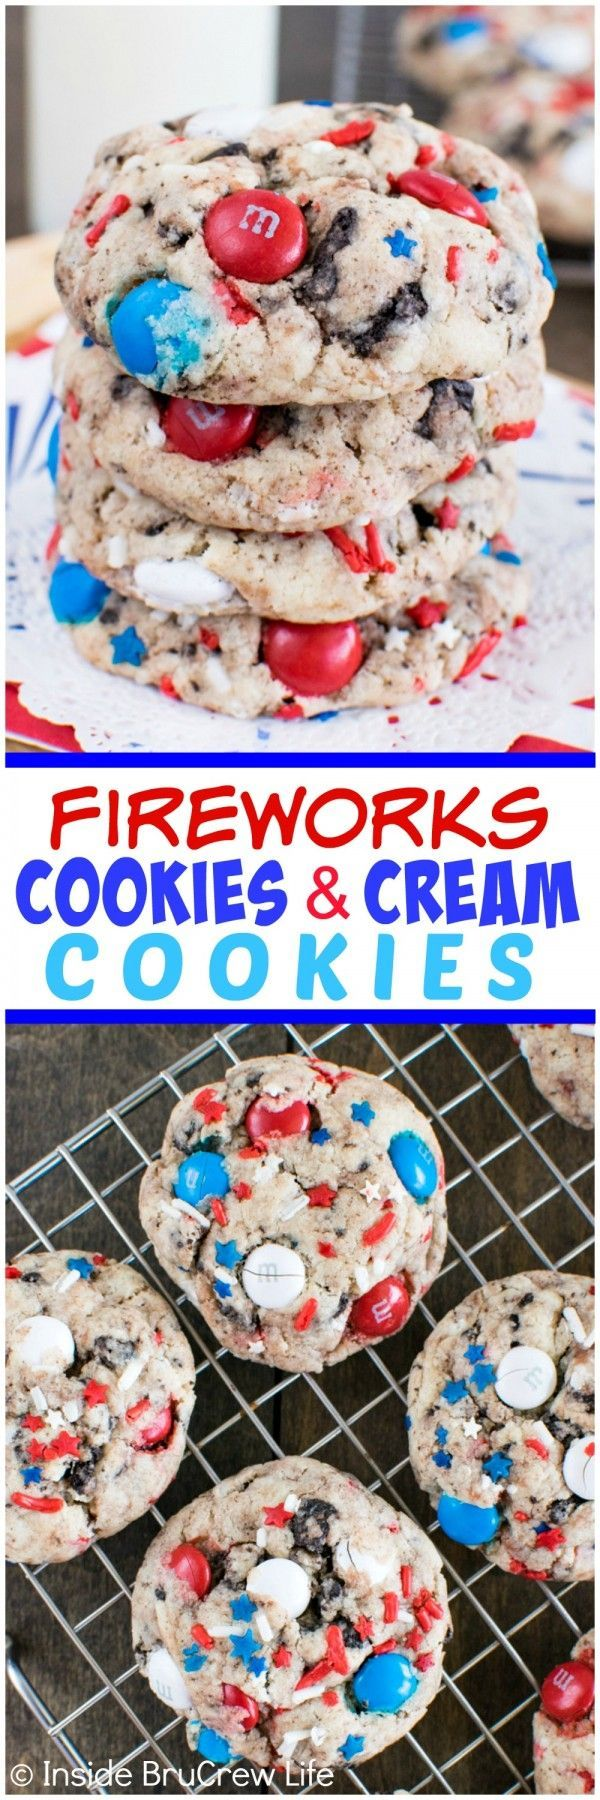 Fireworks Cookies and Cream Cookies - red, white, & blue candies and sprinkles add a fun flair to these easy cookies. This is an awesome cookie recipe!